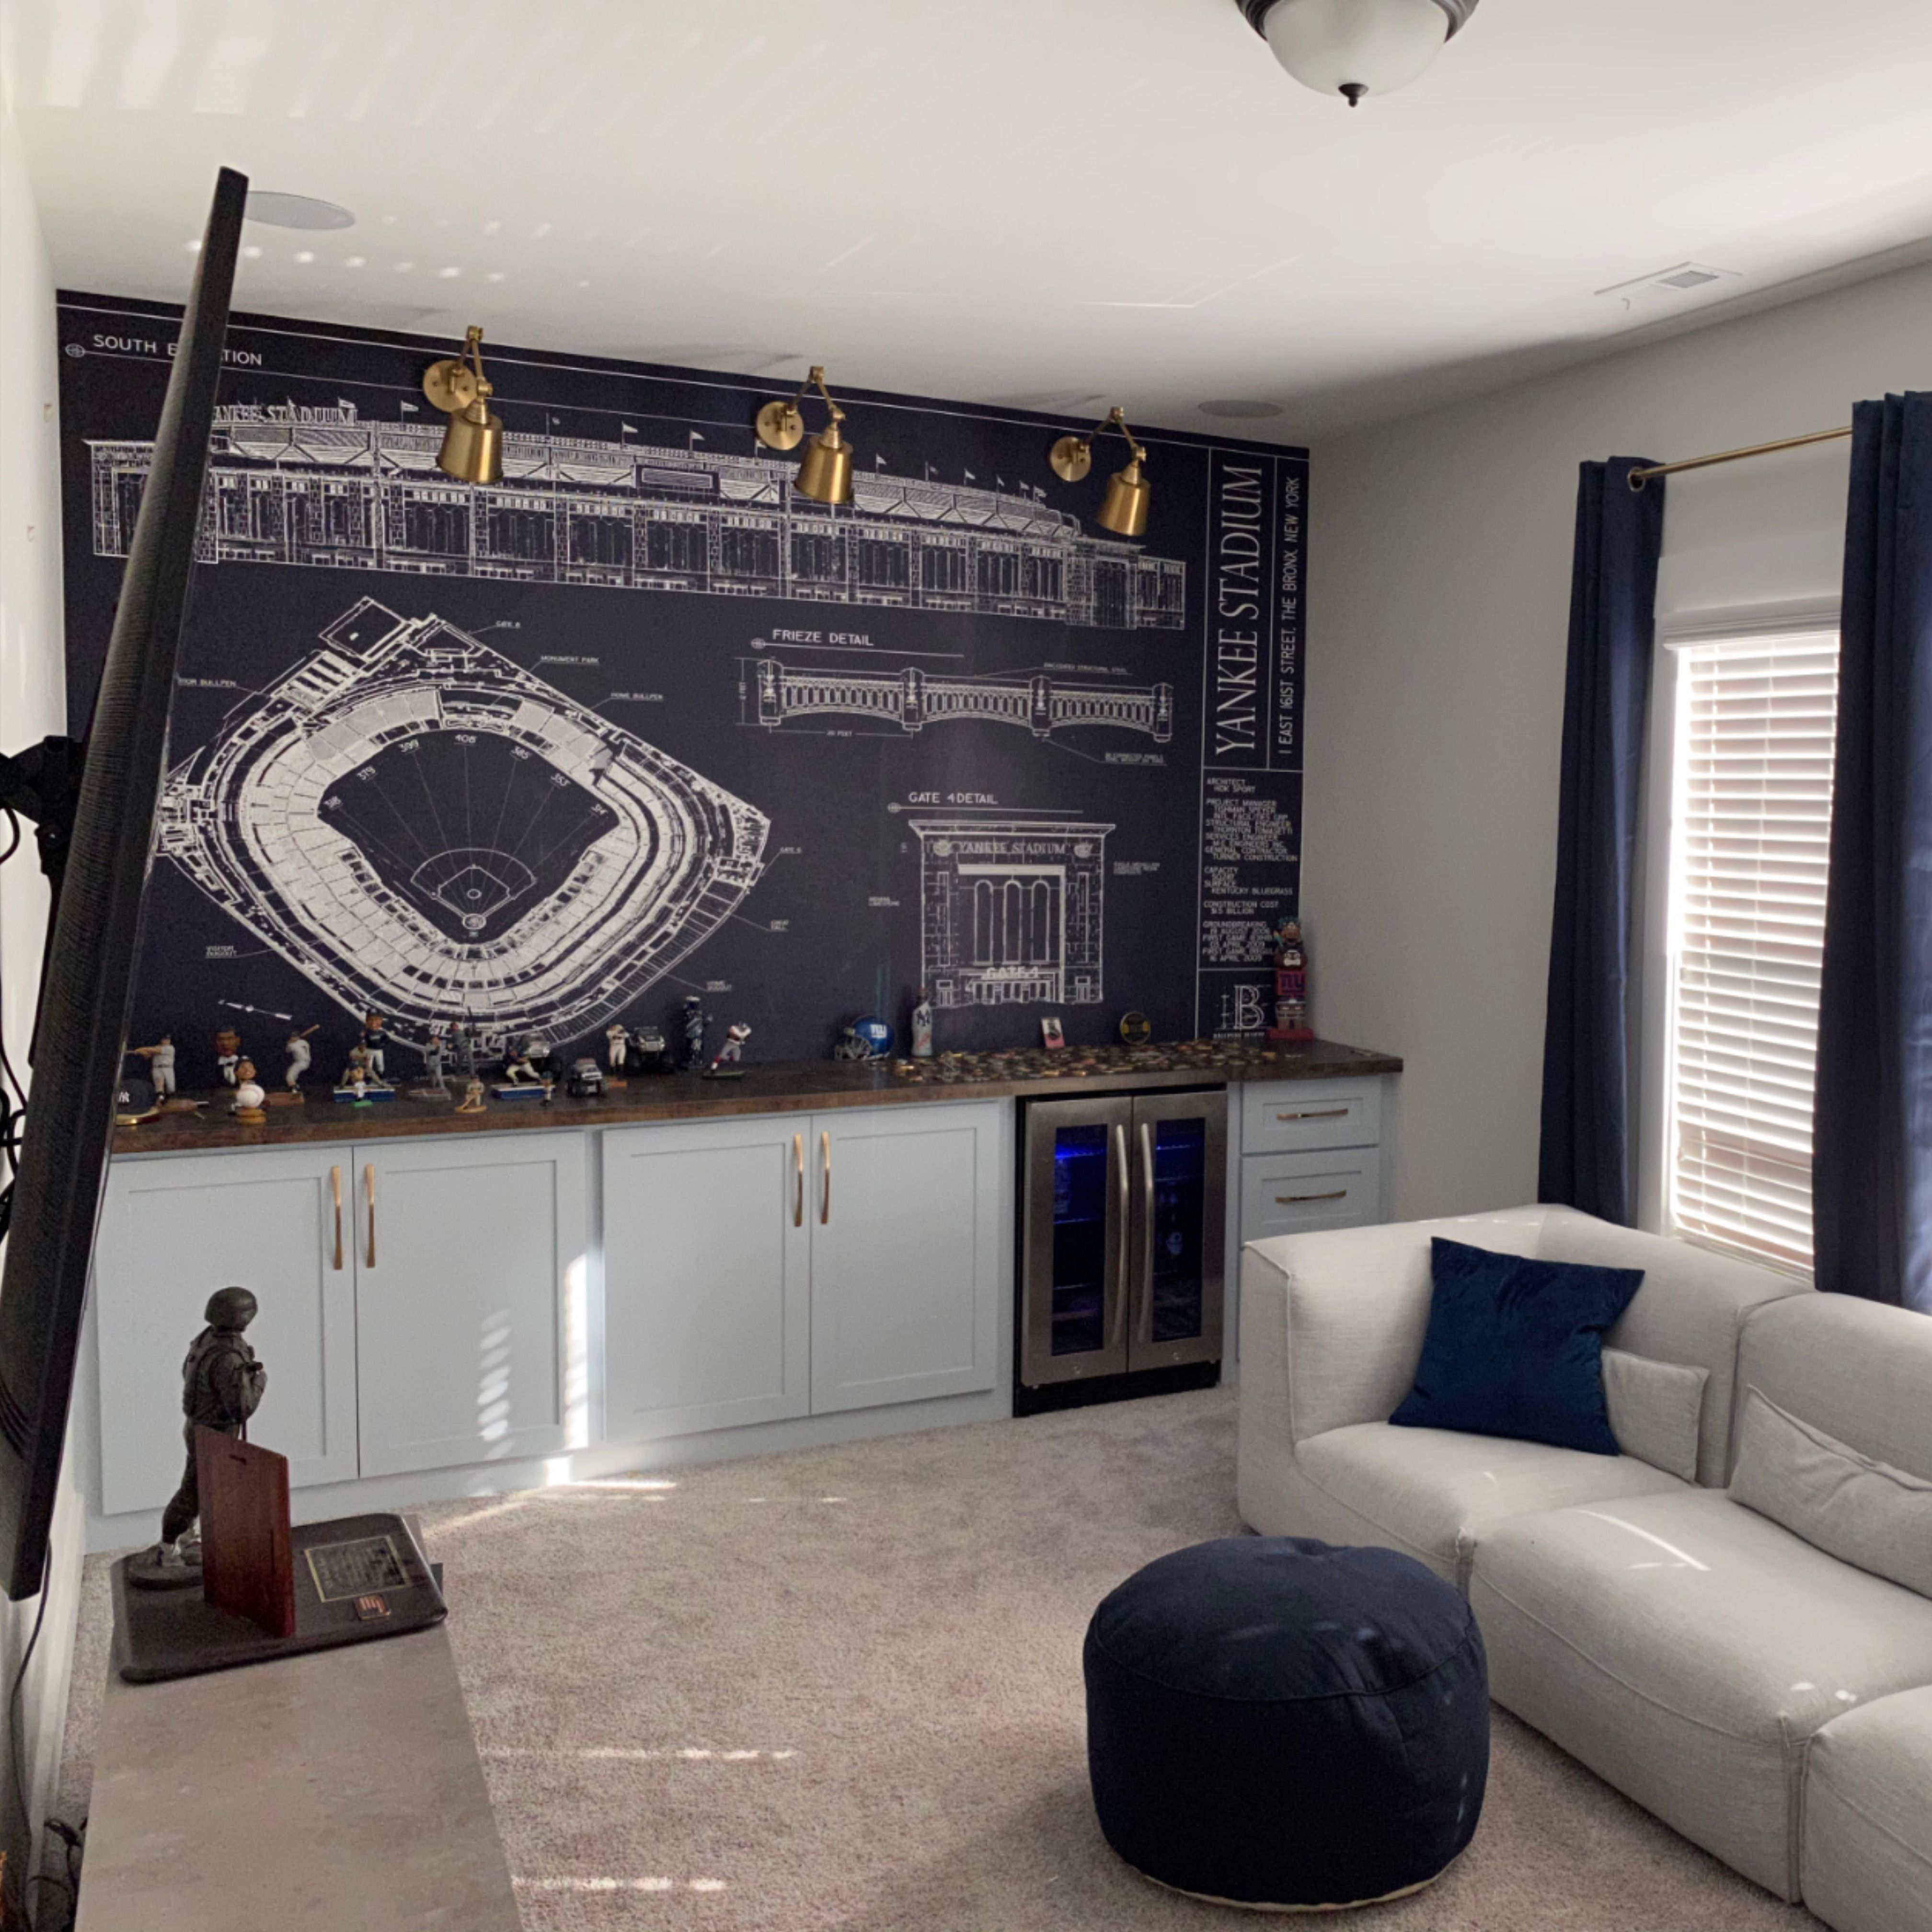 24 Man Cave Wall Murals Ideas In 2021 Man Cave Wall Wall Murals Man Cave